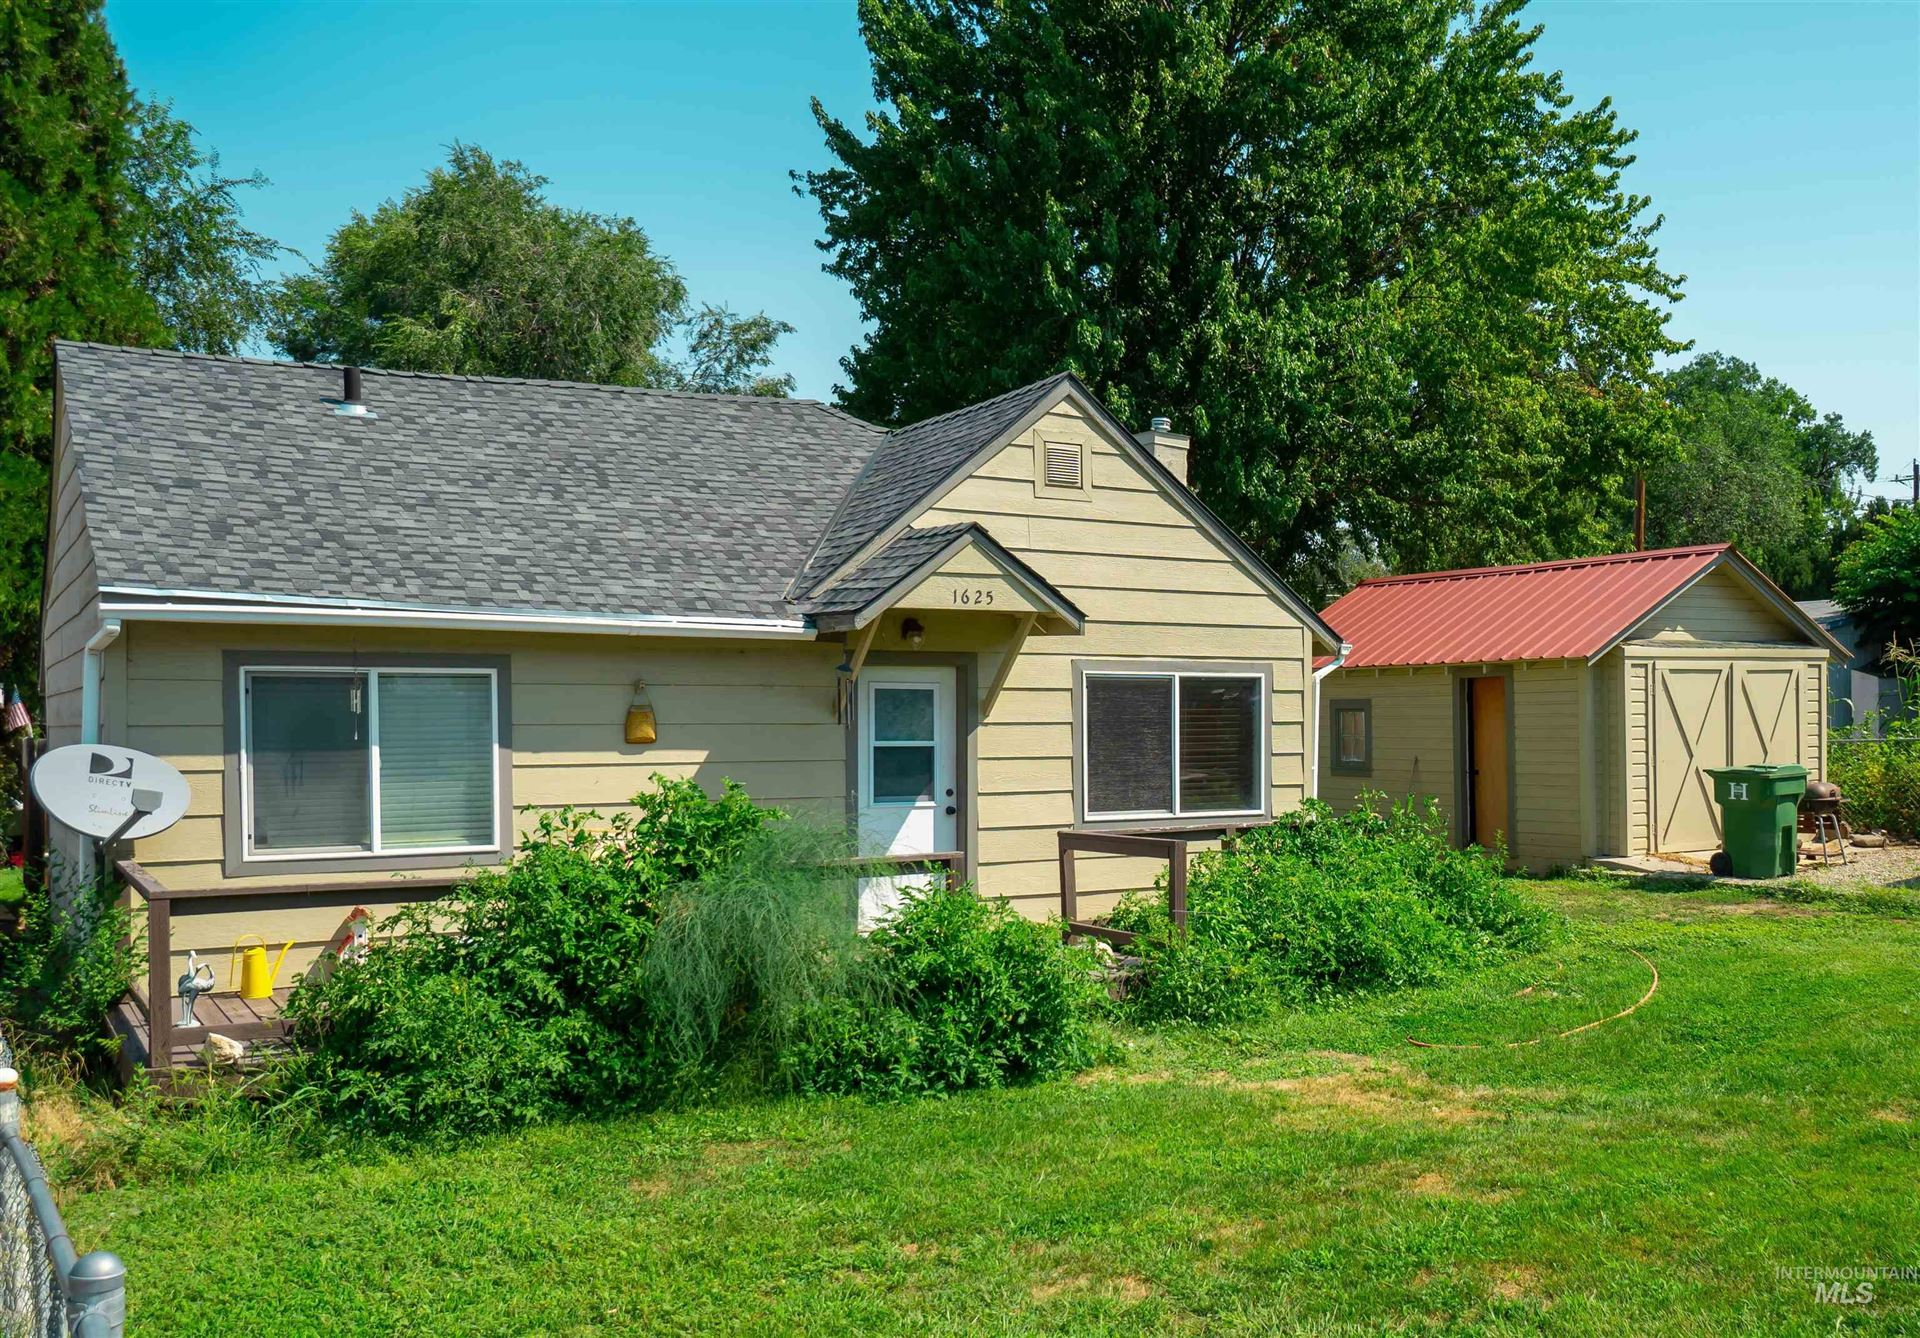 1625 2 Ave S, Payette, ID 83661 - MLS#: 98816977